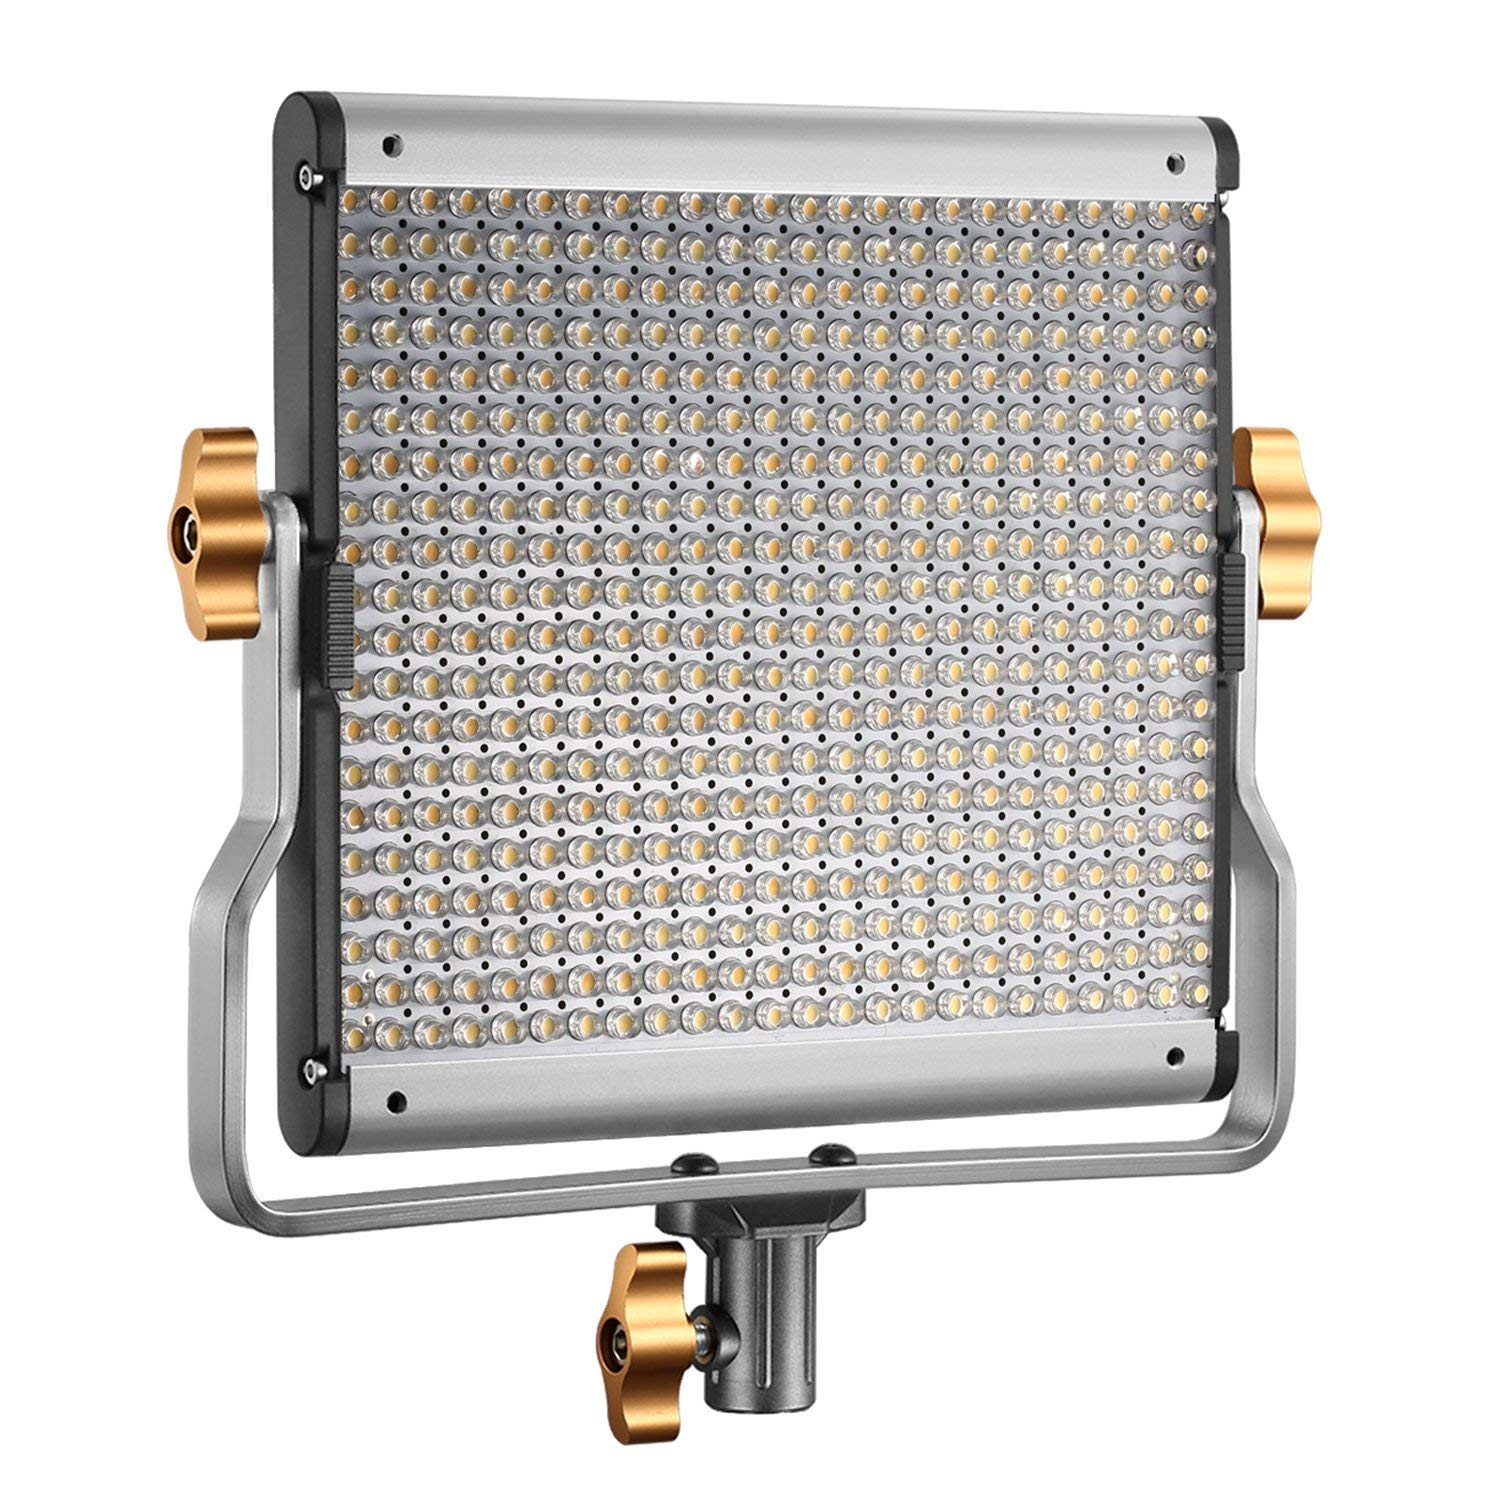 Neewer Dimmable Bi-color 480 LED Video Light with U Bracket Professional LED Panel Lighting (3200-5600K,CRI 96+) with 3-in-1 Camera Cleaning Kit for Photo Studio Portrait,YouTube Video Photography